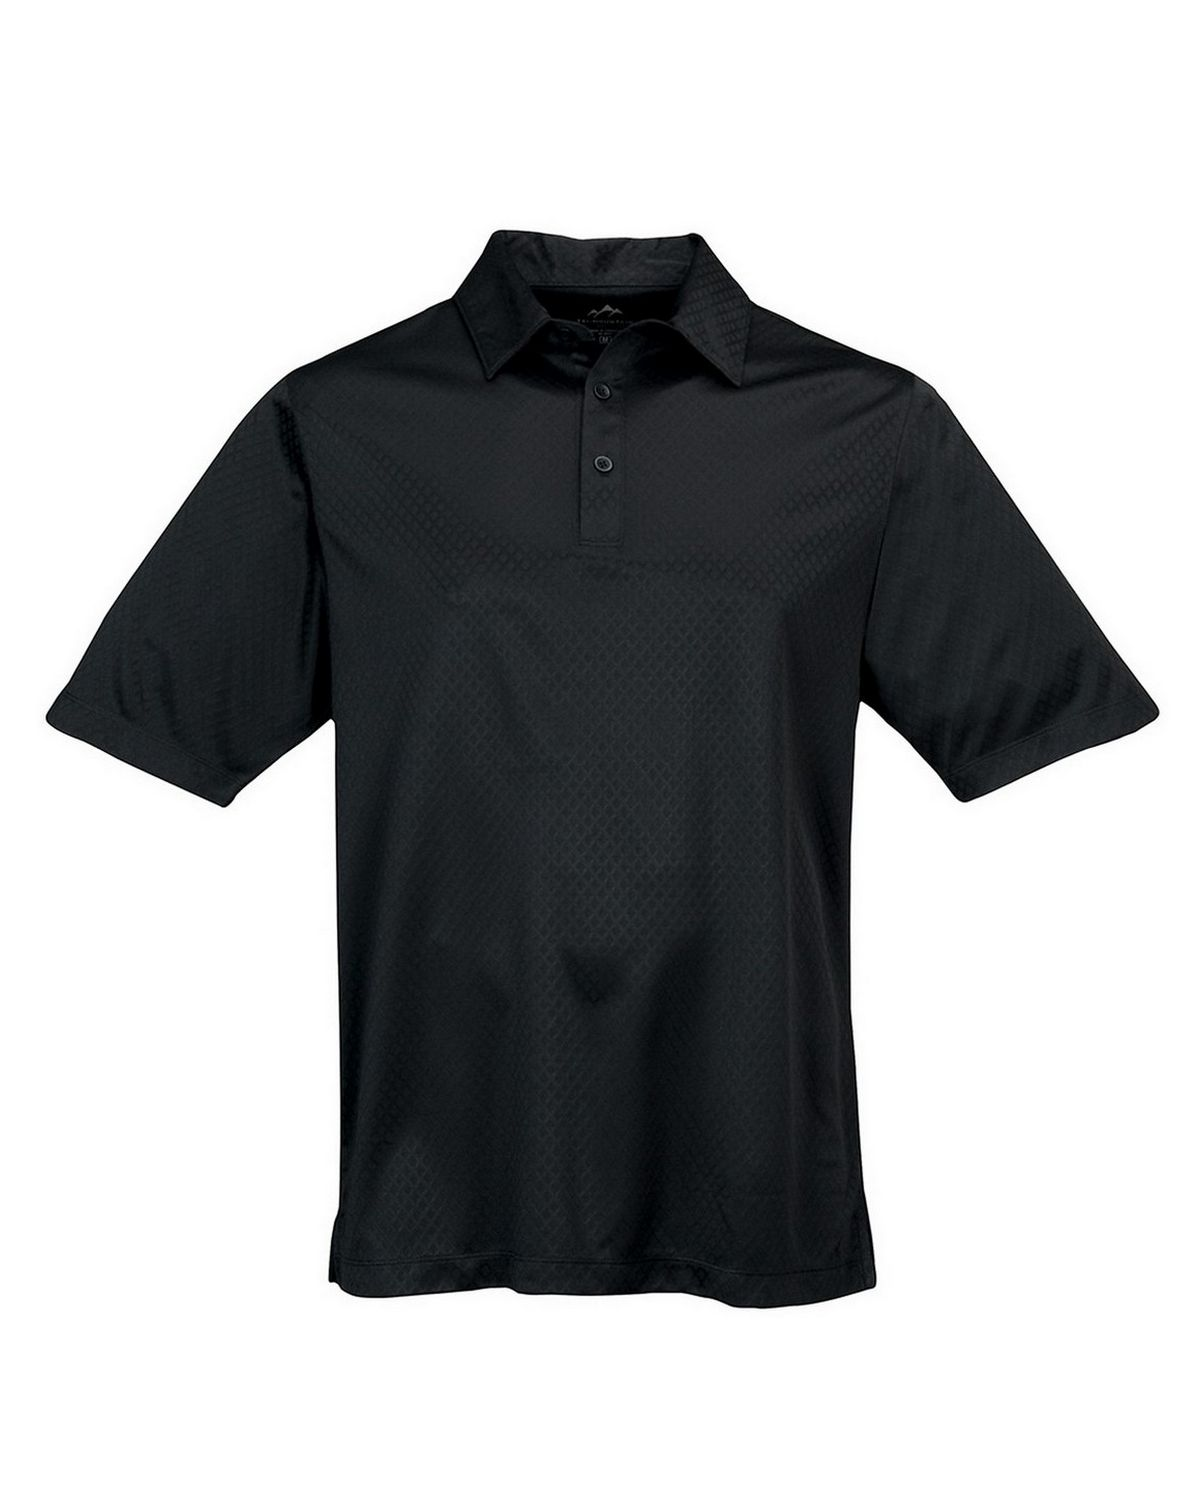 Tri-Mountain Performance 038 Spades - Black - XL 038